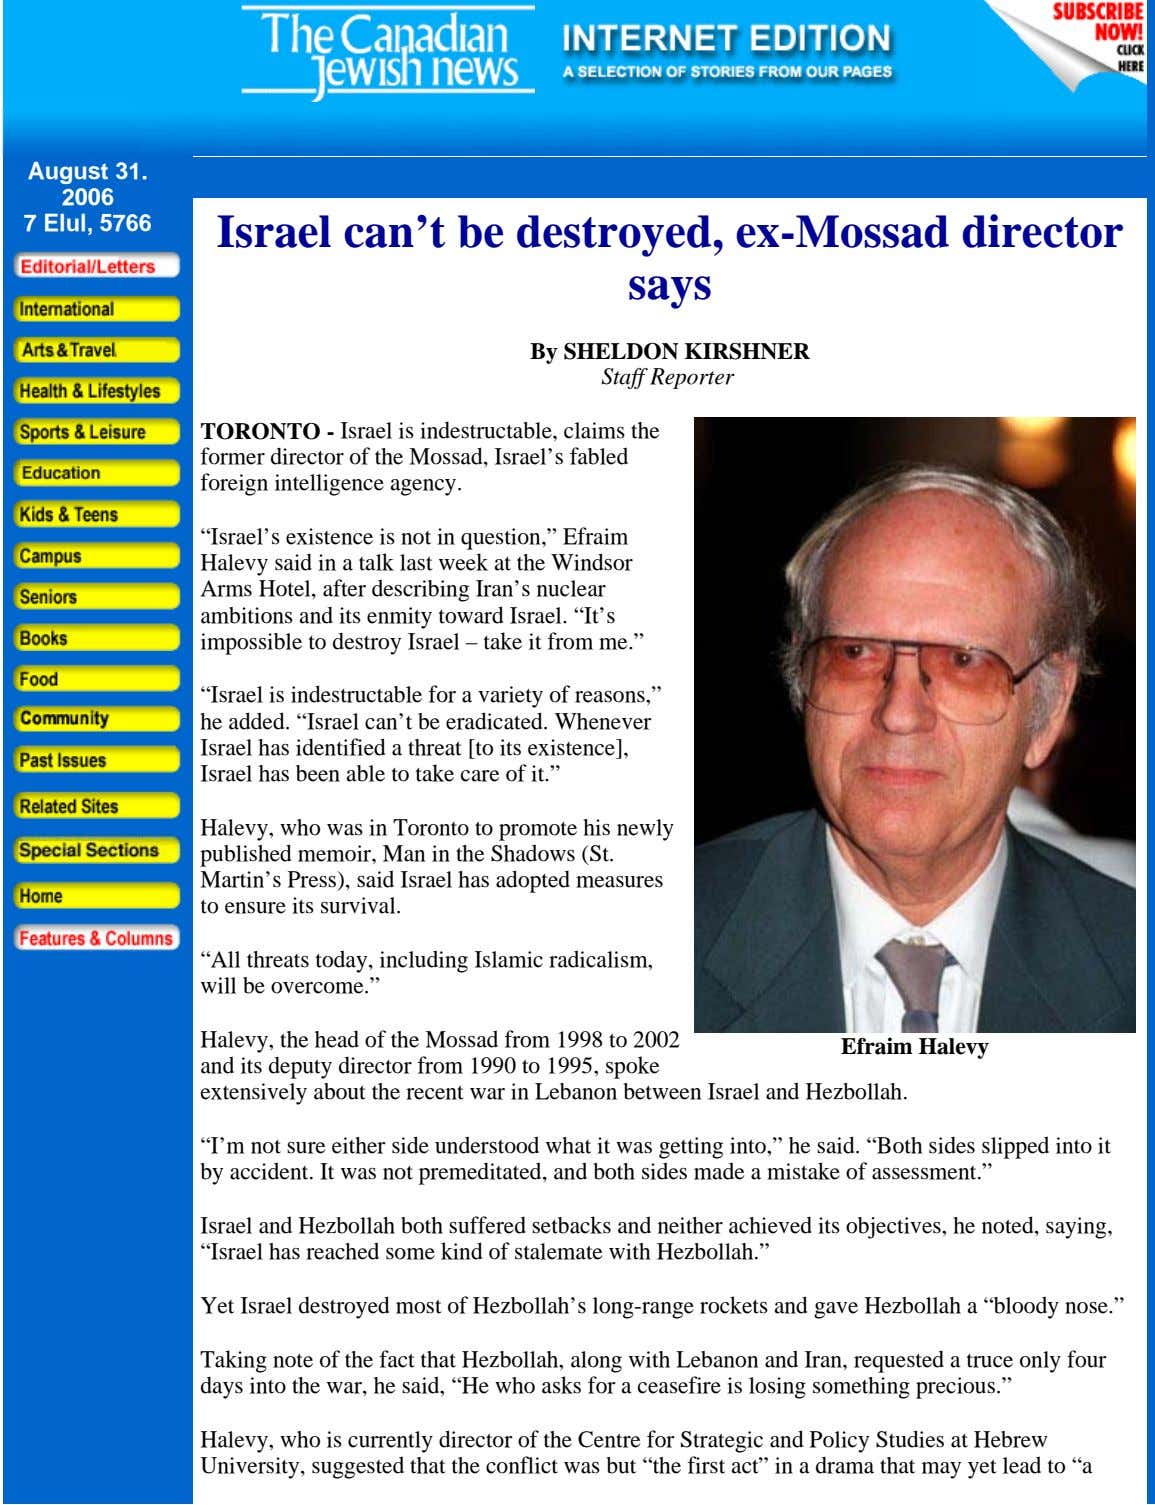 August 31. 2006 7 Elul, 5766 Israel can't be destroyed, ex-Mossad director says By SHELDON